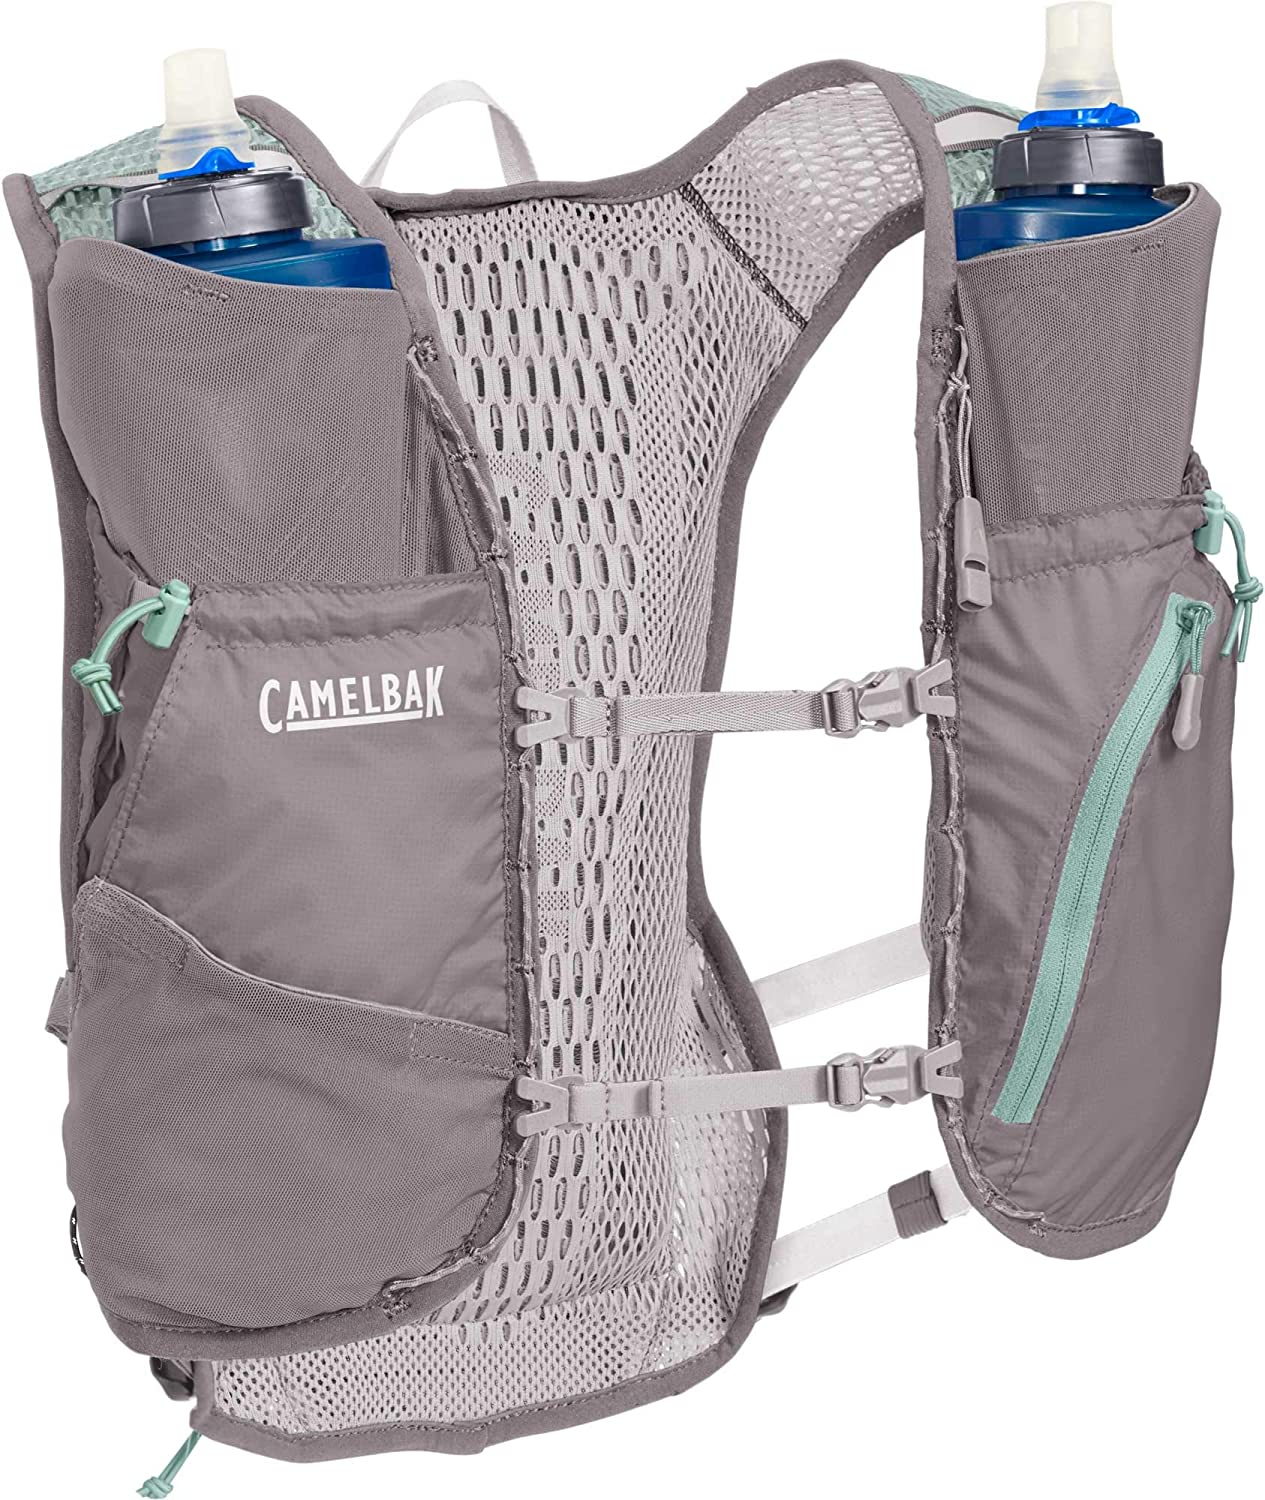 CamelBak Zephyr Running Hydration Vest – Integrated Rain Cover – Stretch Overflow Pocket